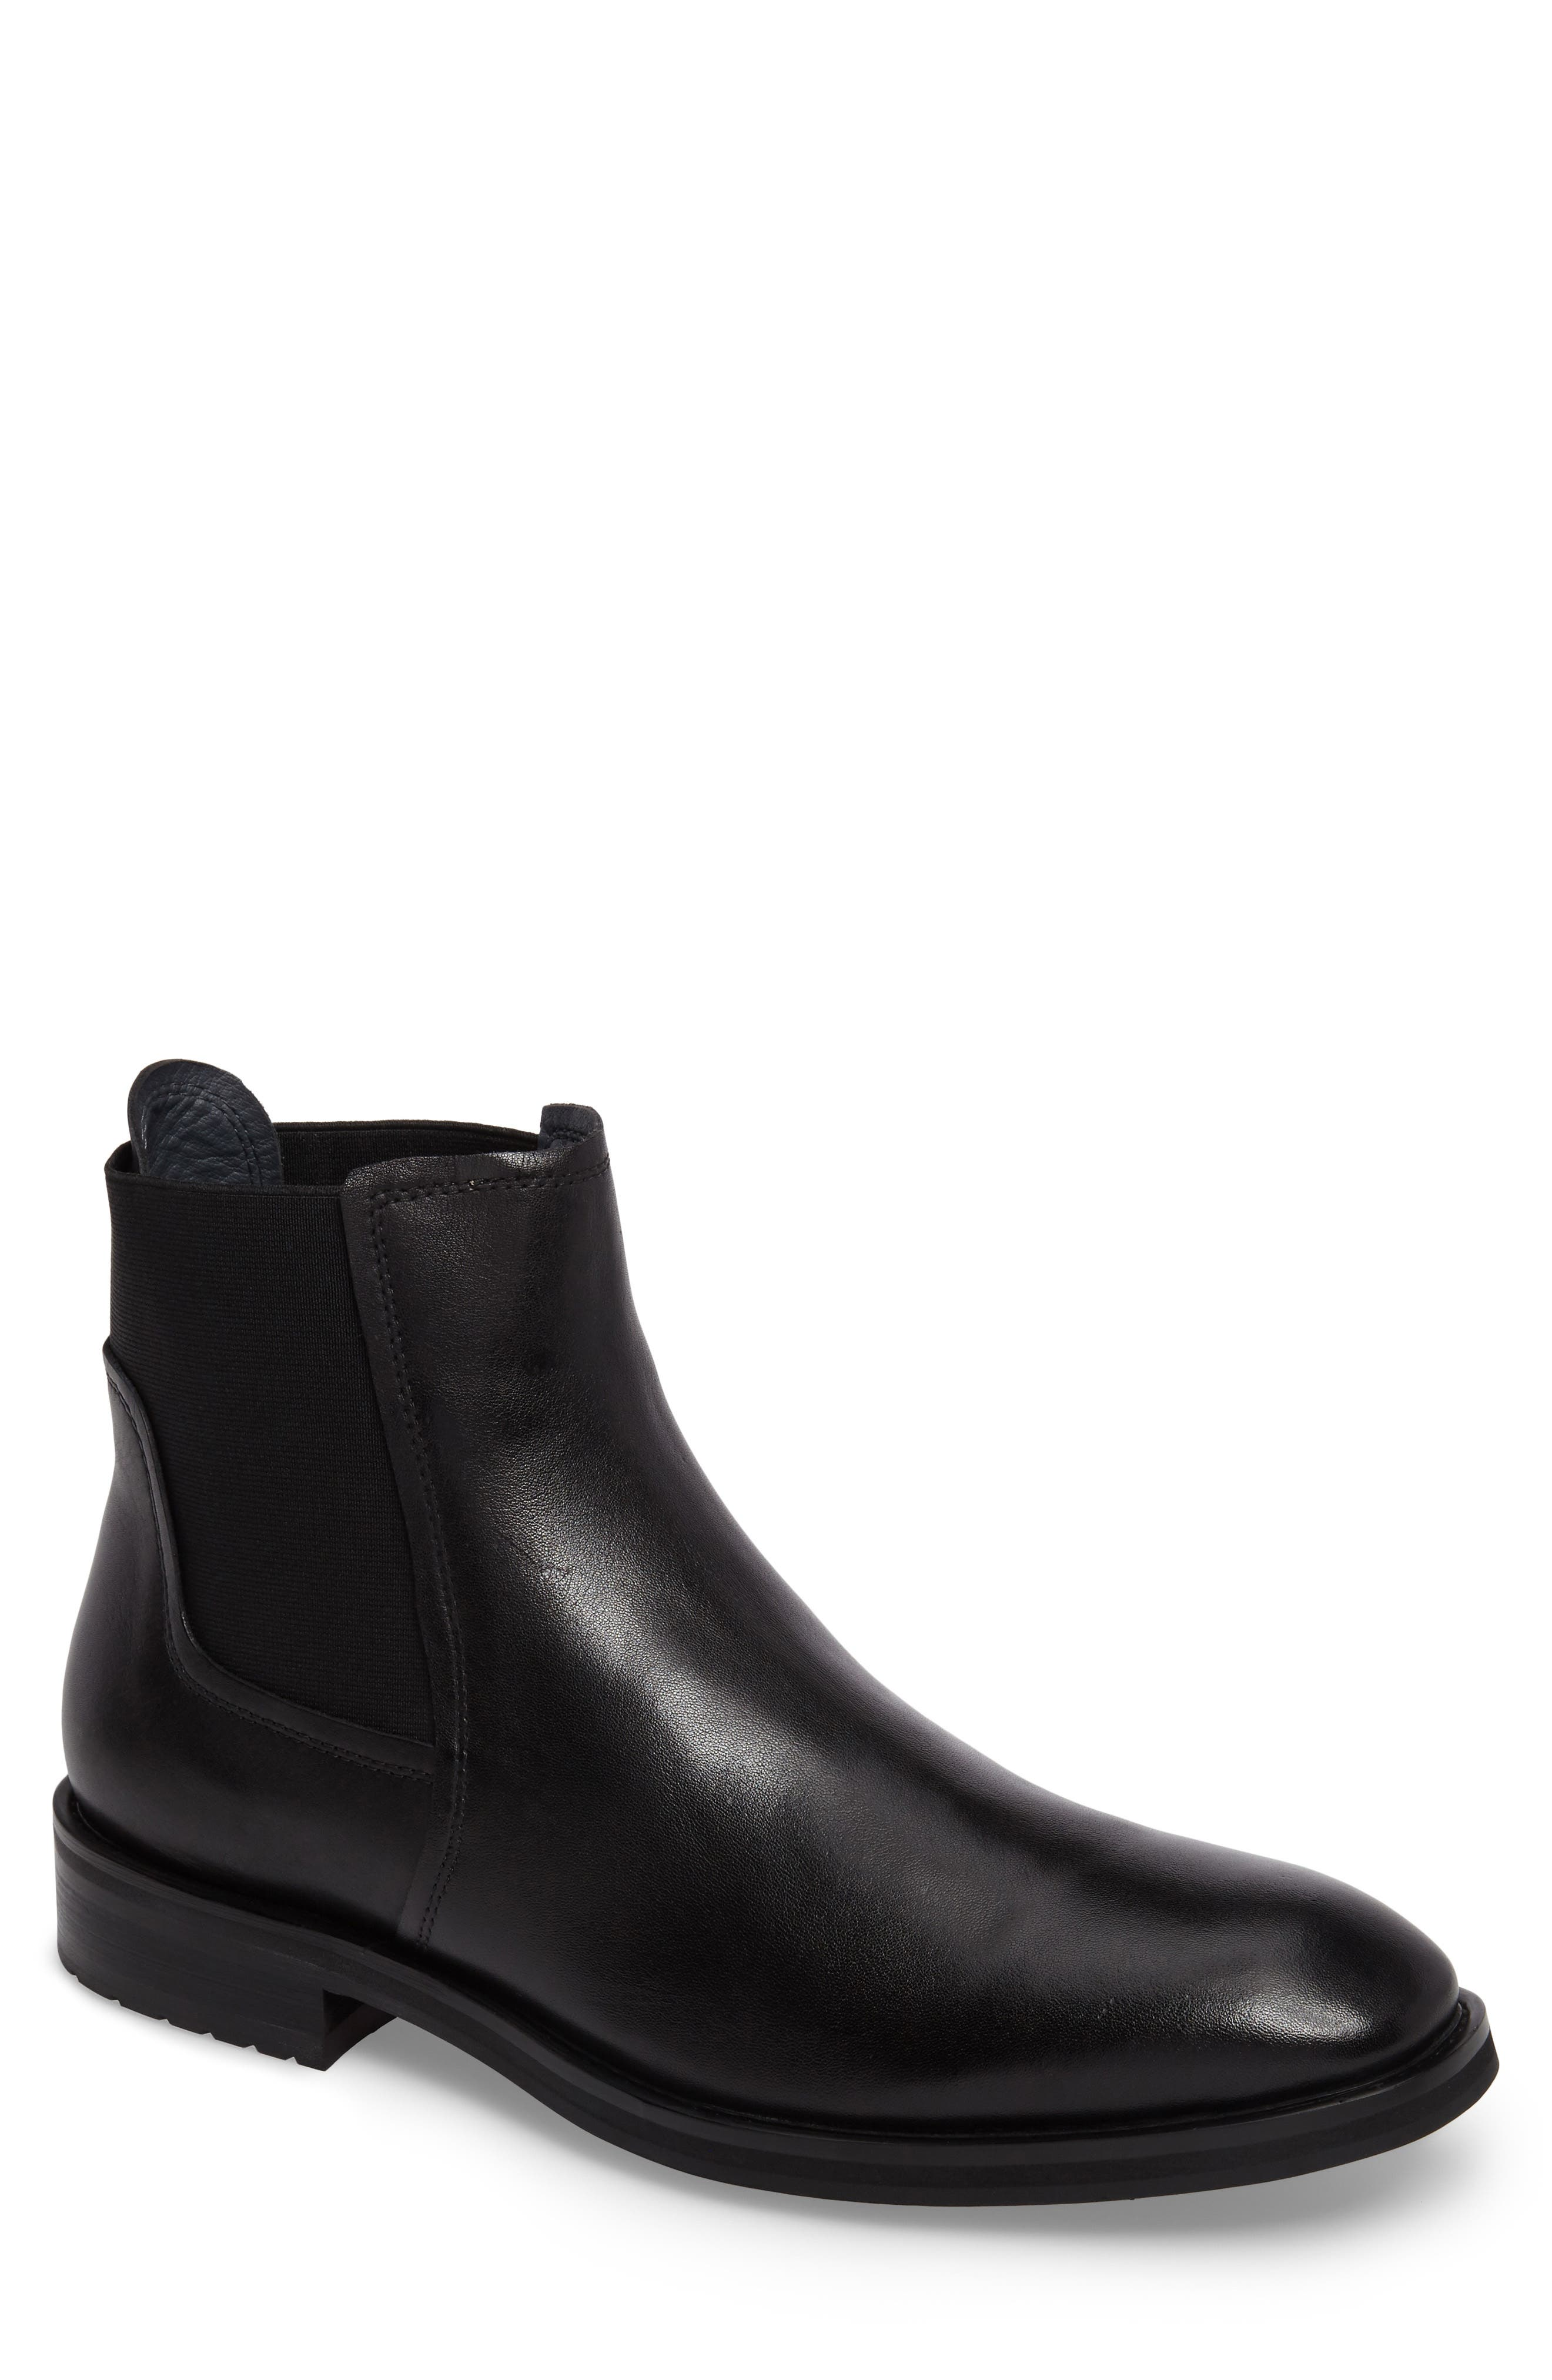 Belmont Chelsea Boot,                             Main thumbnail 1, color,                             001